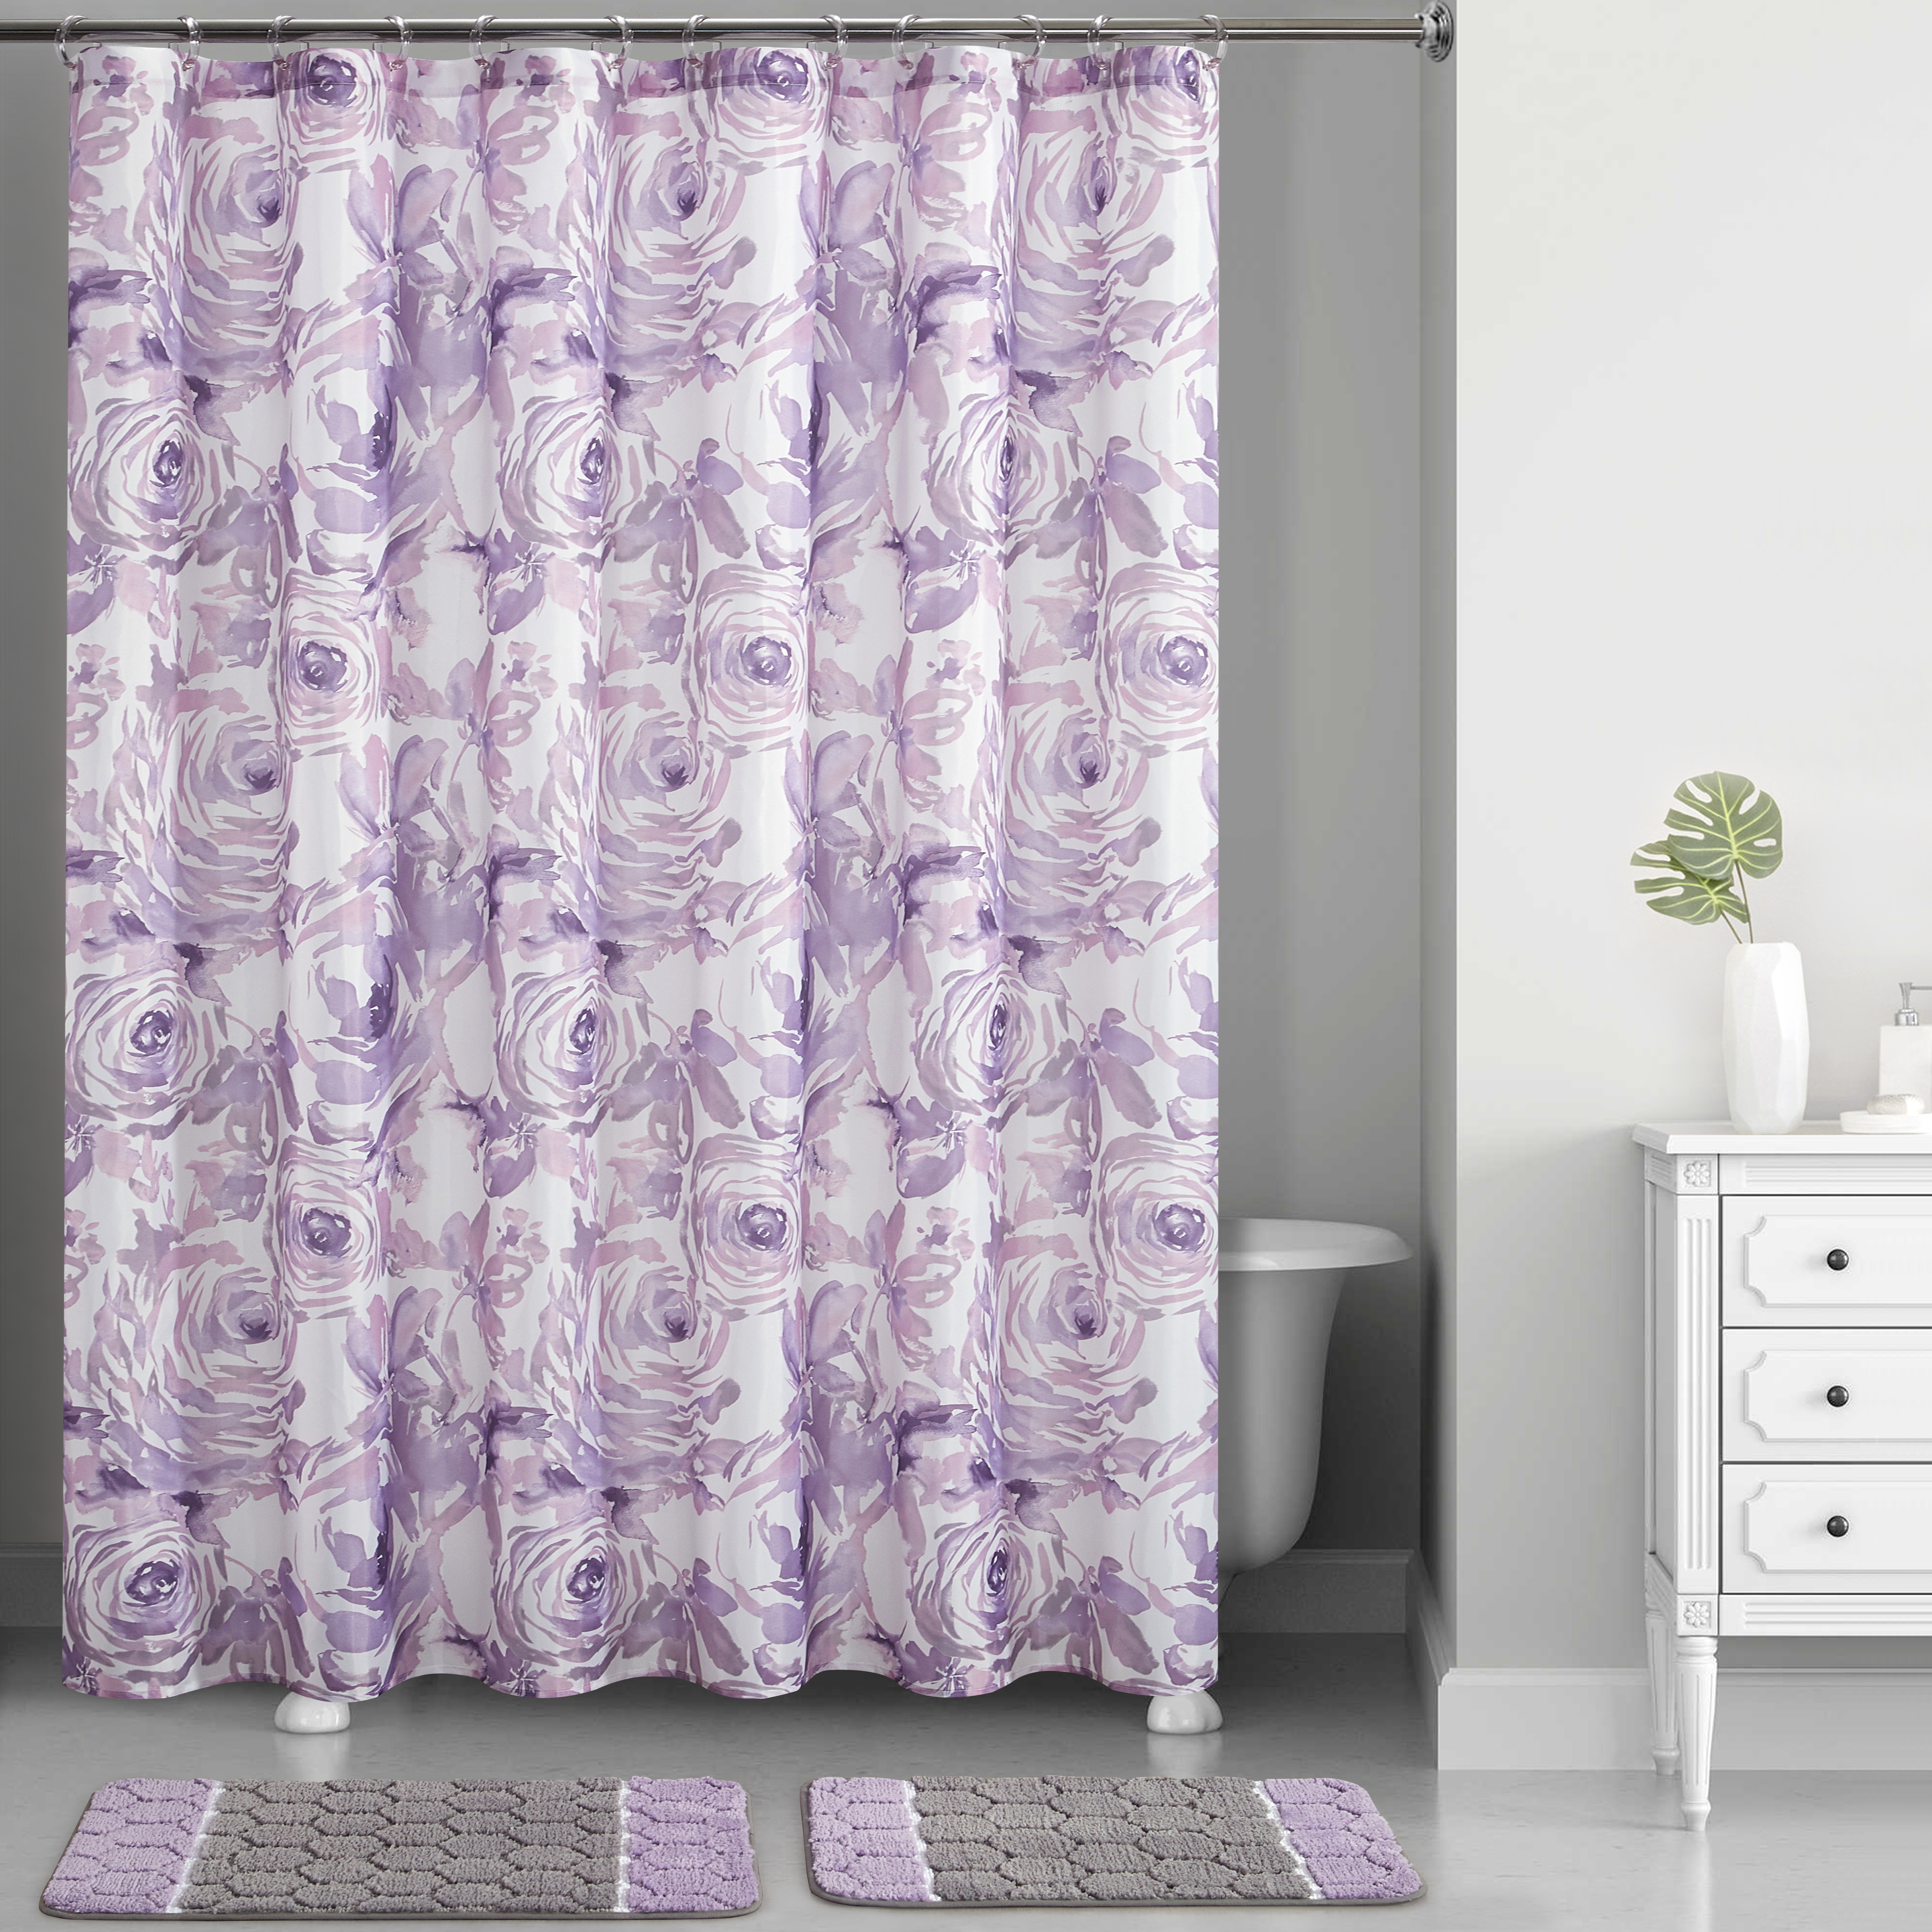 Mainstays Lavender Floral Watercolor Printed 15 Piece Shower Curtain Set